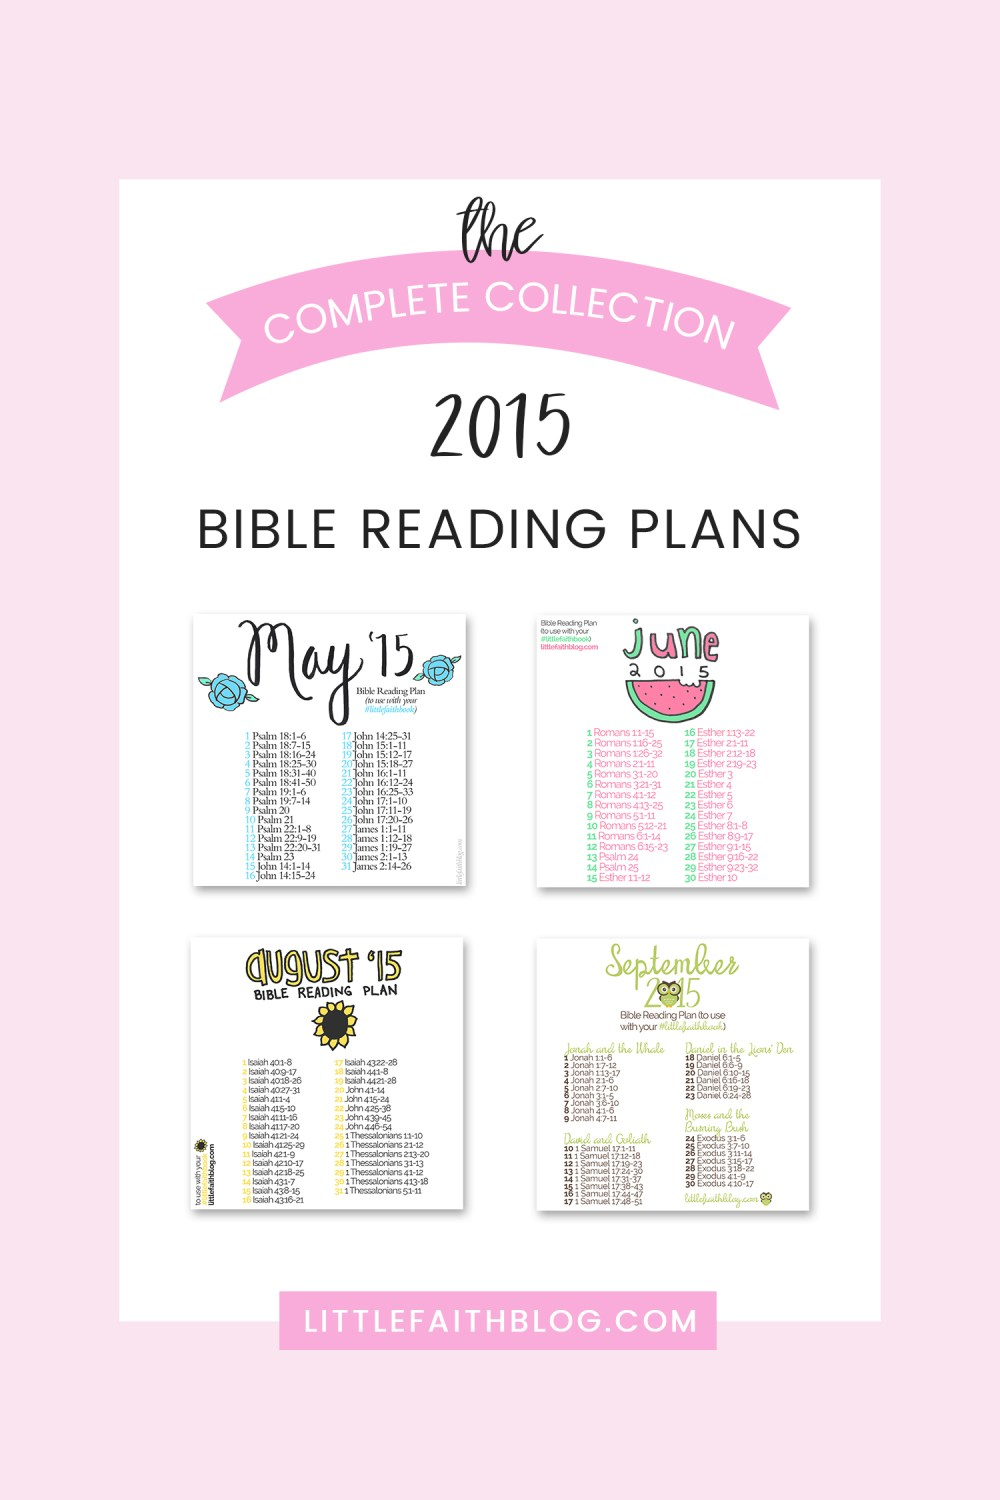 The Complete Collection: 2015 Bible Reading Plans